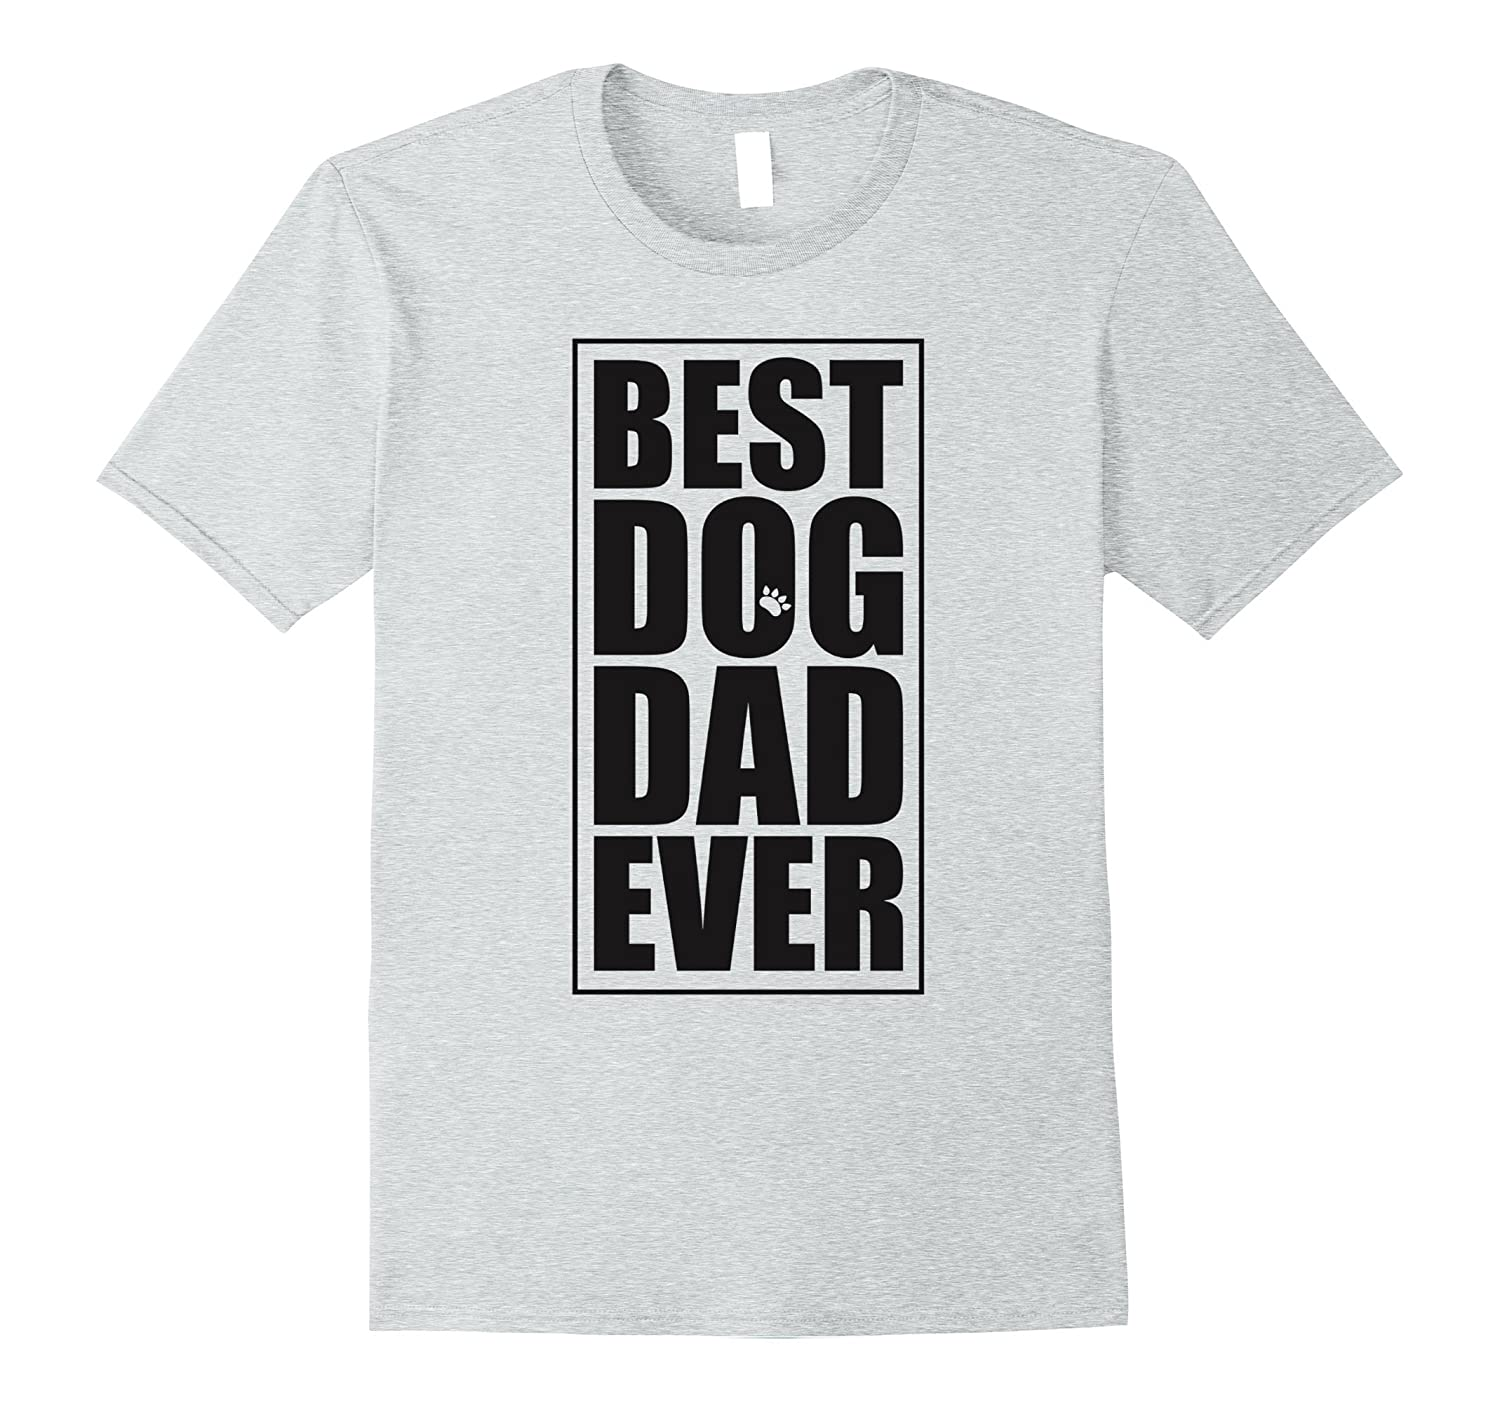 bc32401a Best Dog Dad Ever T-Shirt - Dog Dad Black Letters Shirt-TH - TEEHELEN